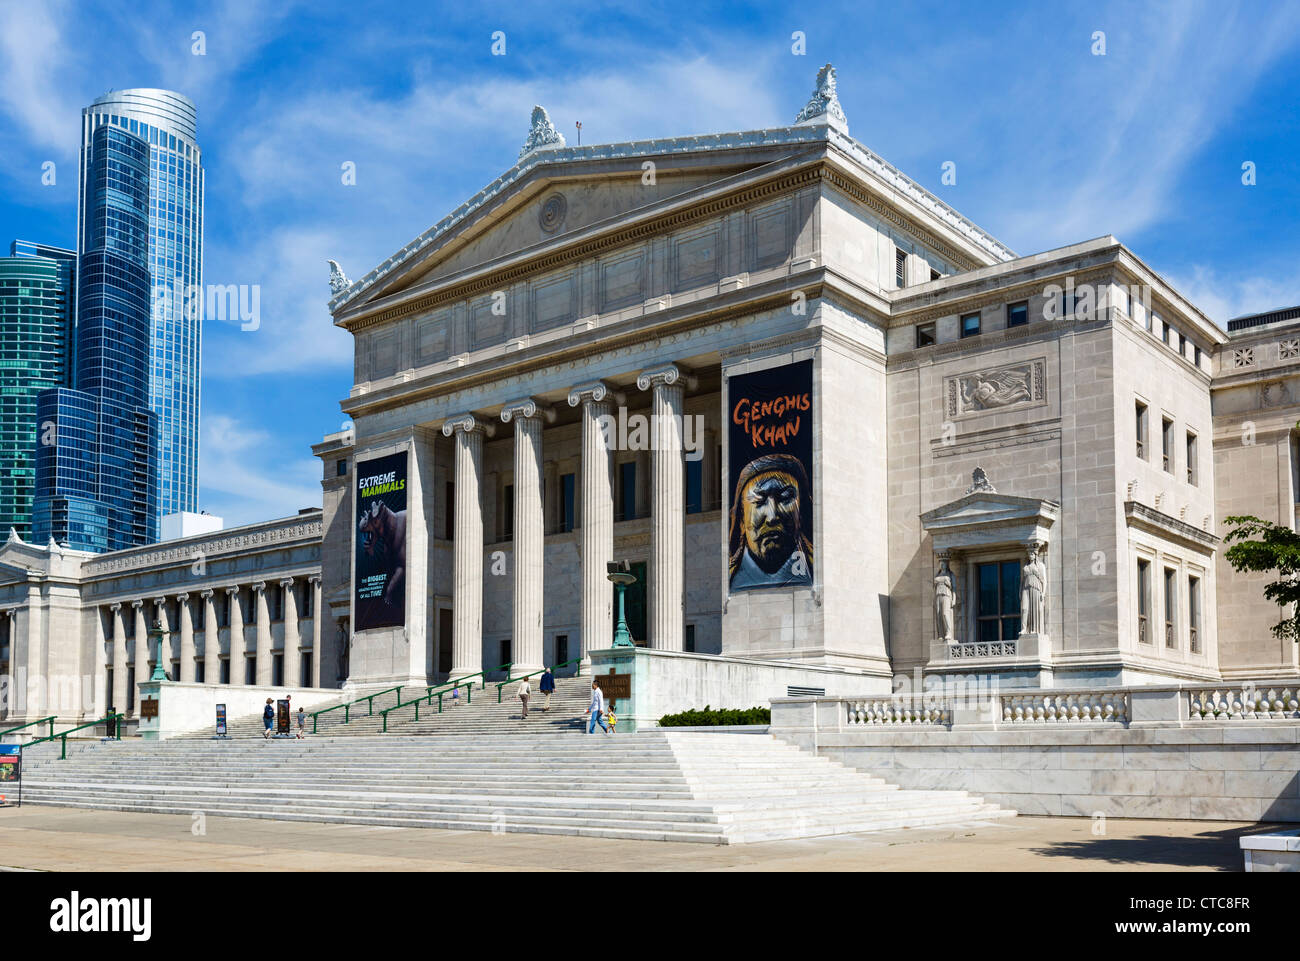 The Field Museum of Natural History on the Museum Campus in Grant Park, Chicago, Illinois, USA - Stock Image